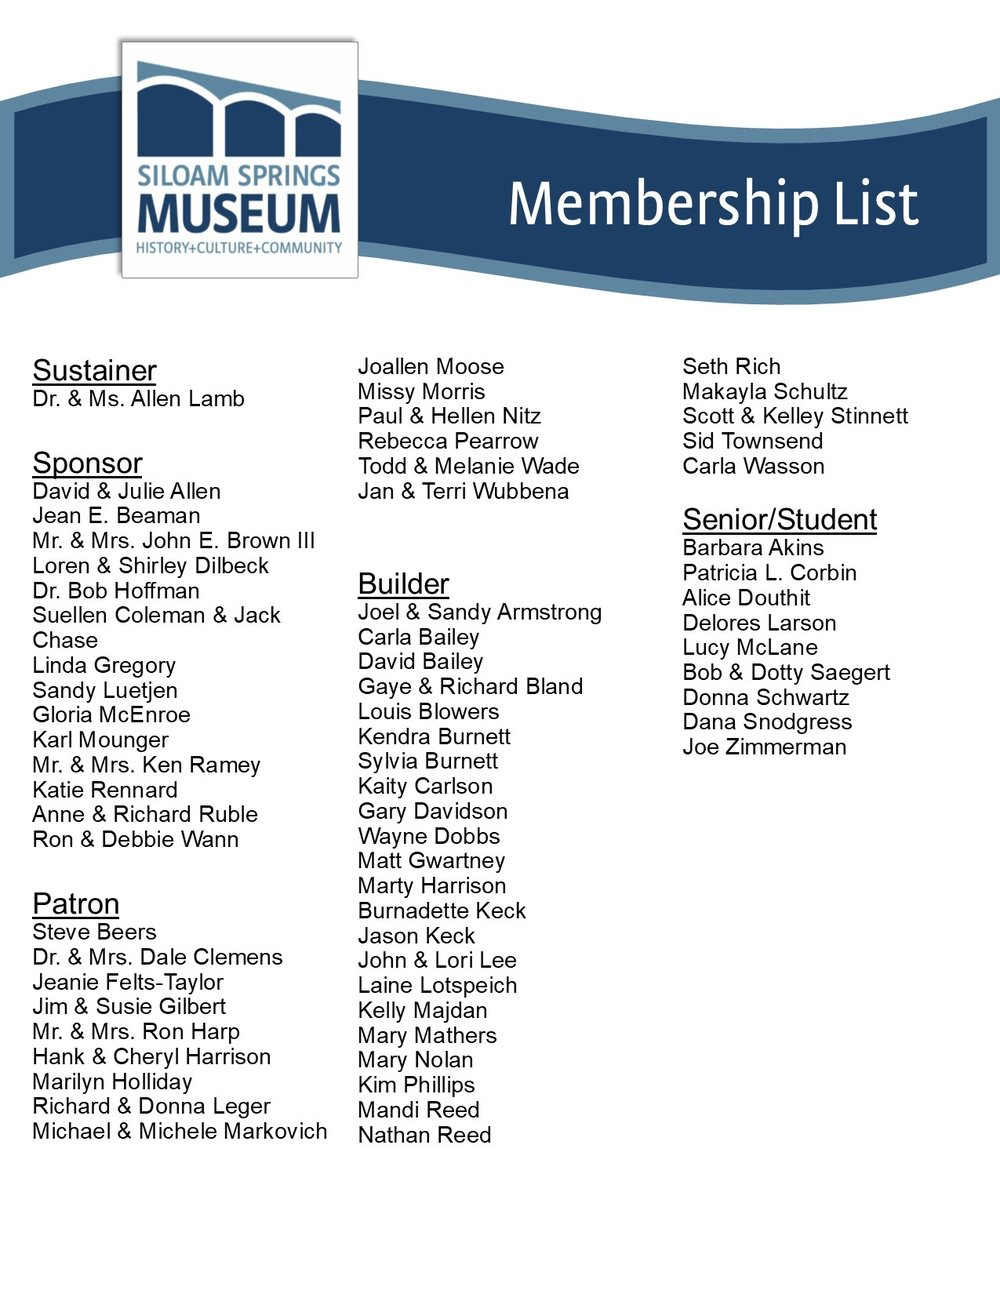 Membership List Current as of 11/07/17